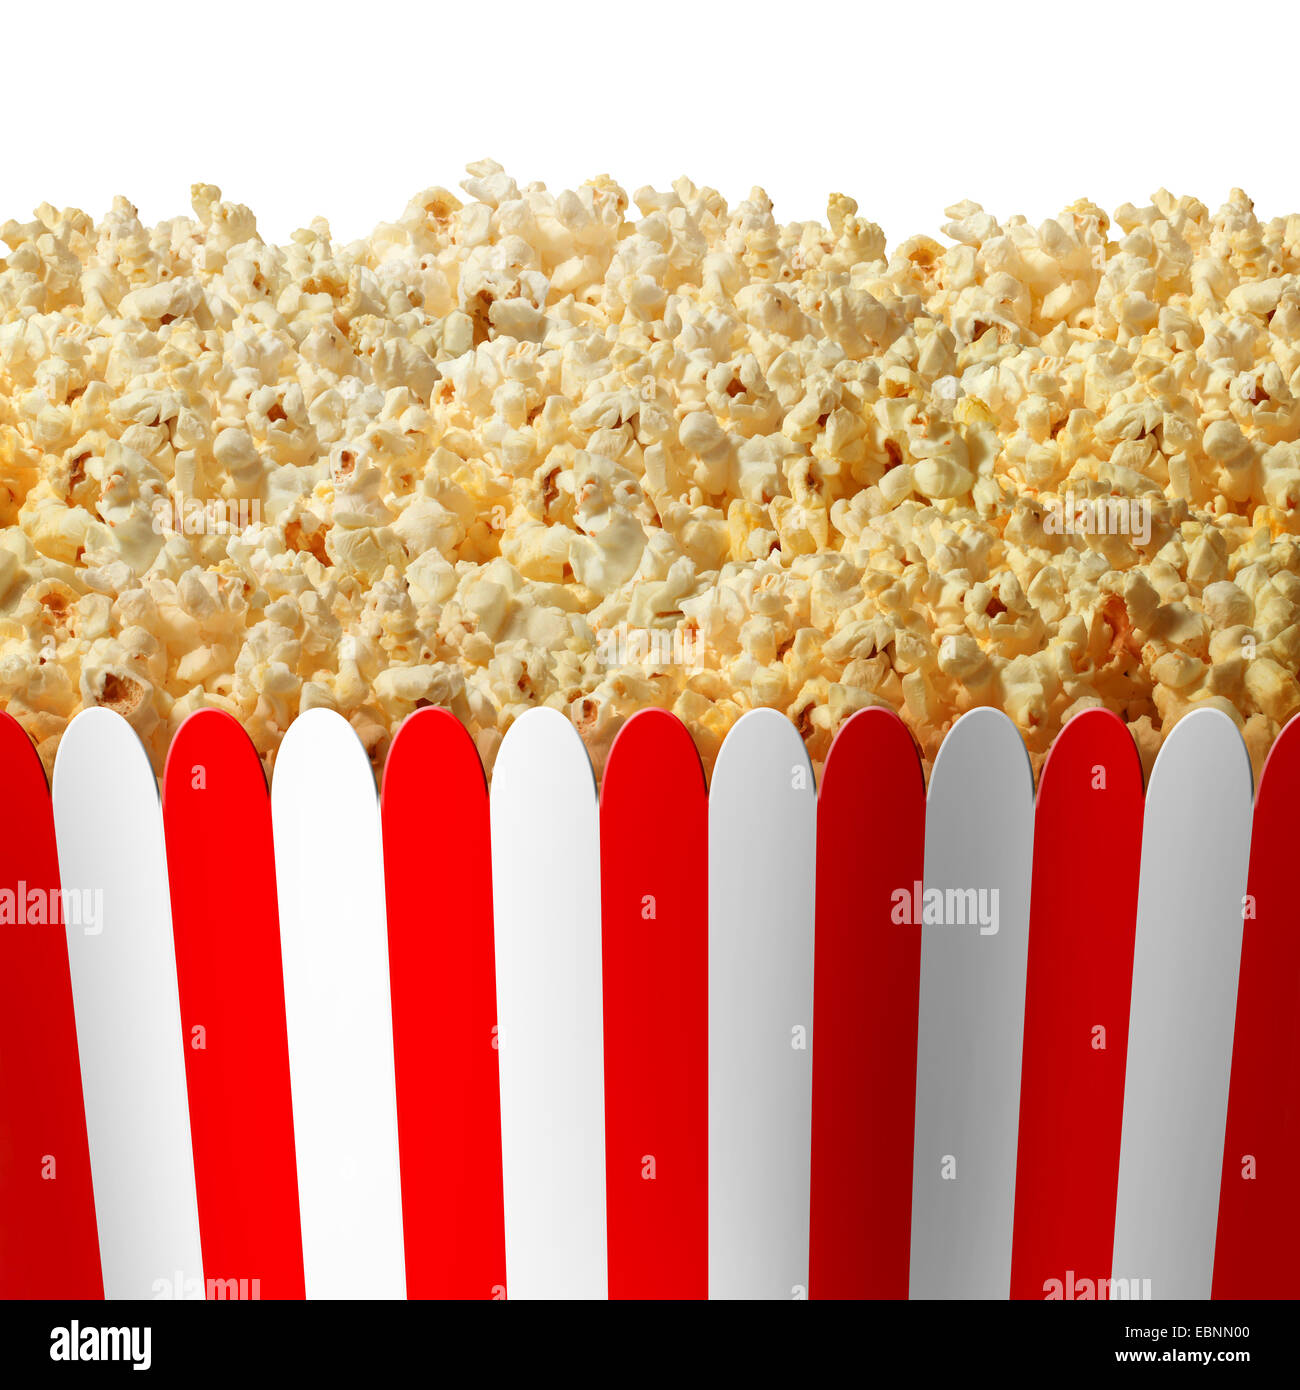 Popcorn box in striped red and white classic container isolated on a white background as an entertainment symbol - Stock Image